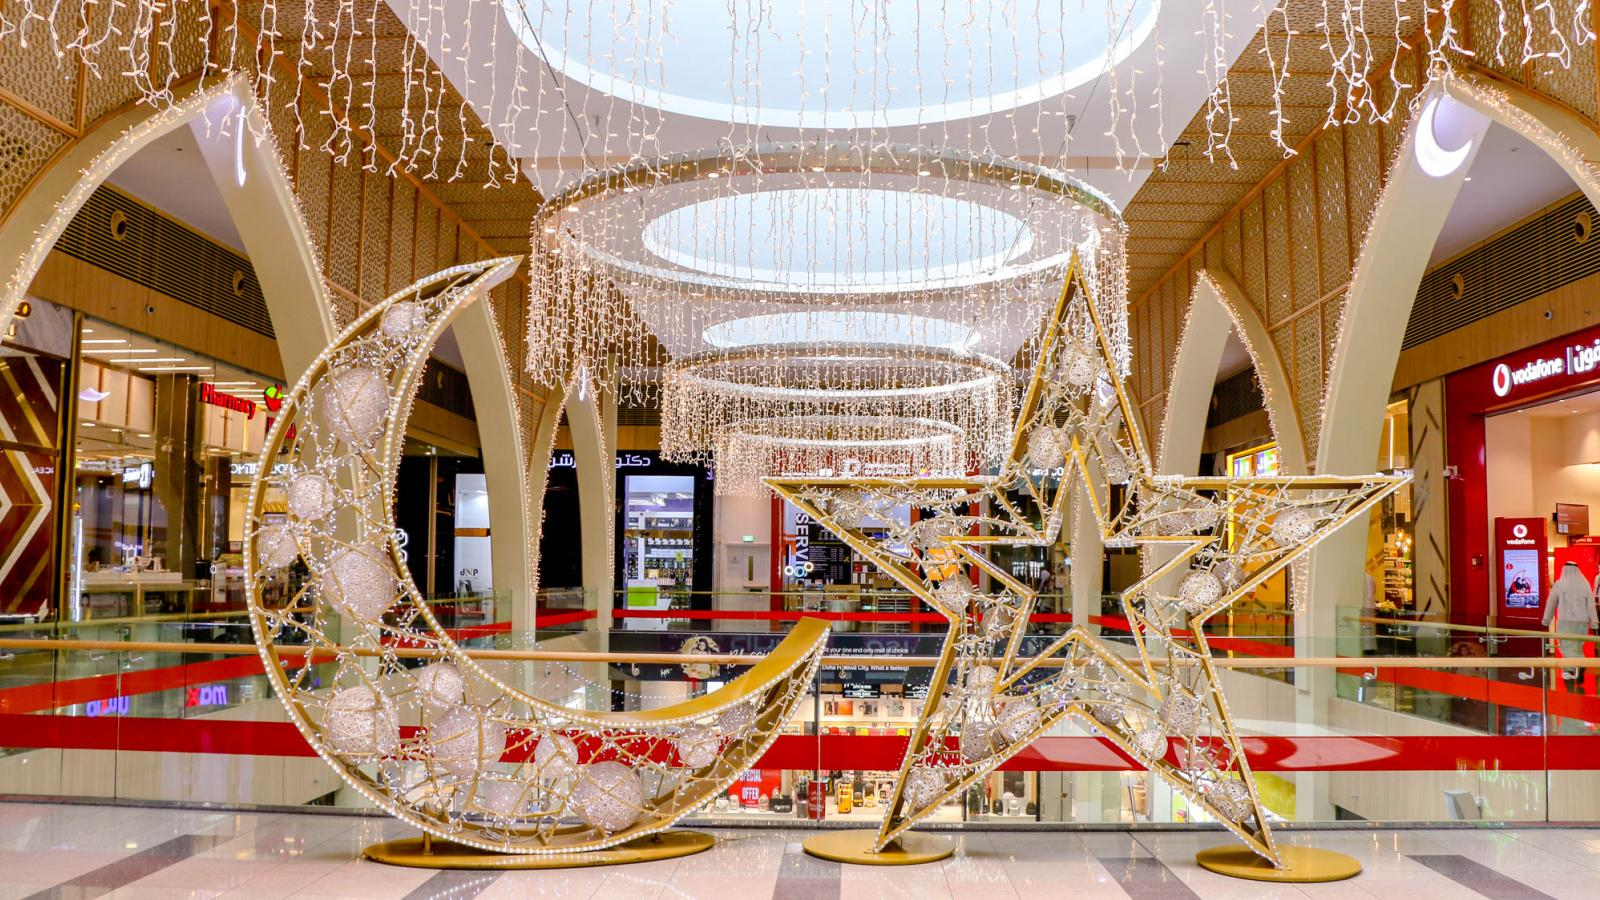 DFC celebrates Eid Al-Fitr with exciting offers and new collections